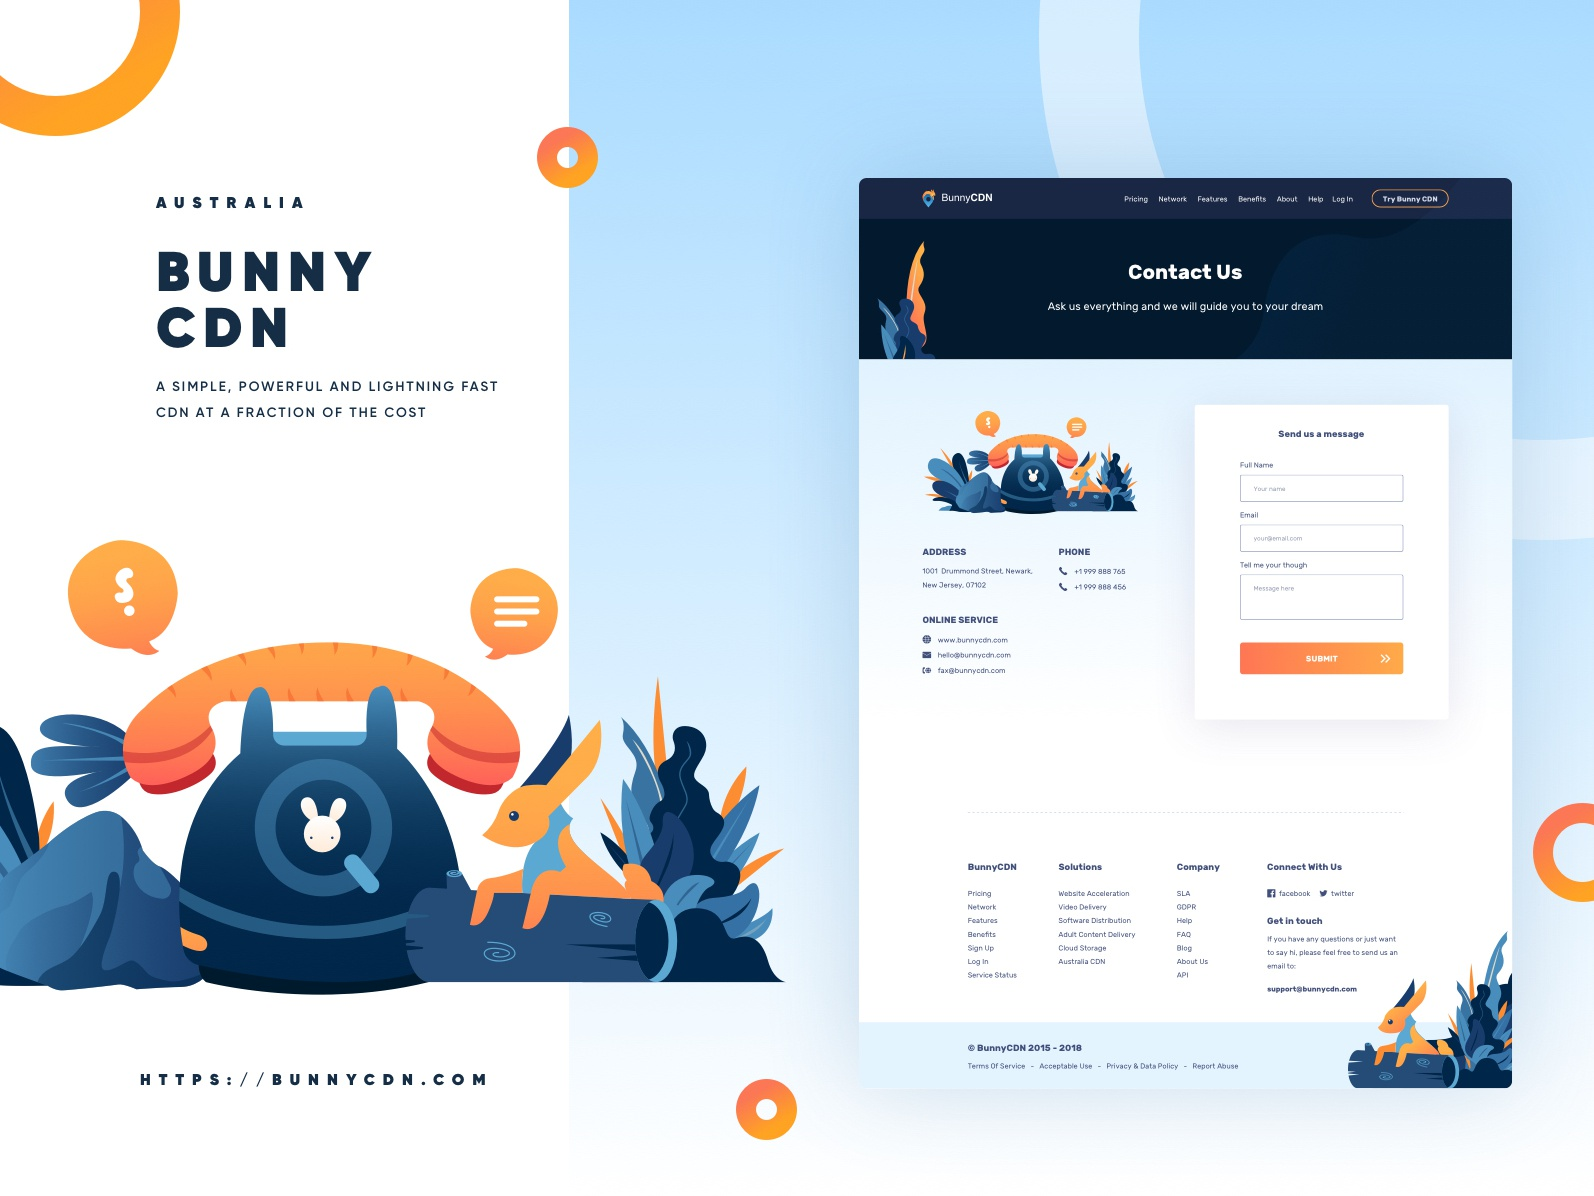 BunnyCDN Full Website Redesign - Contact Us rabbit web  design redesign web design ui gradient form vpn internet service contact us cdn bunny website vector landing page illustration